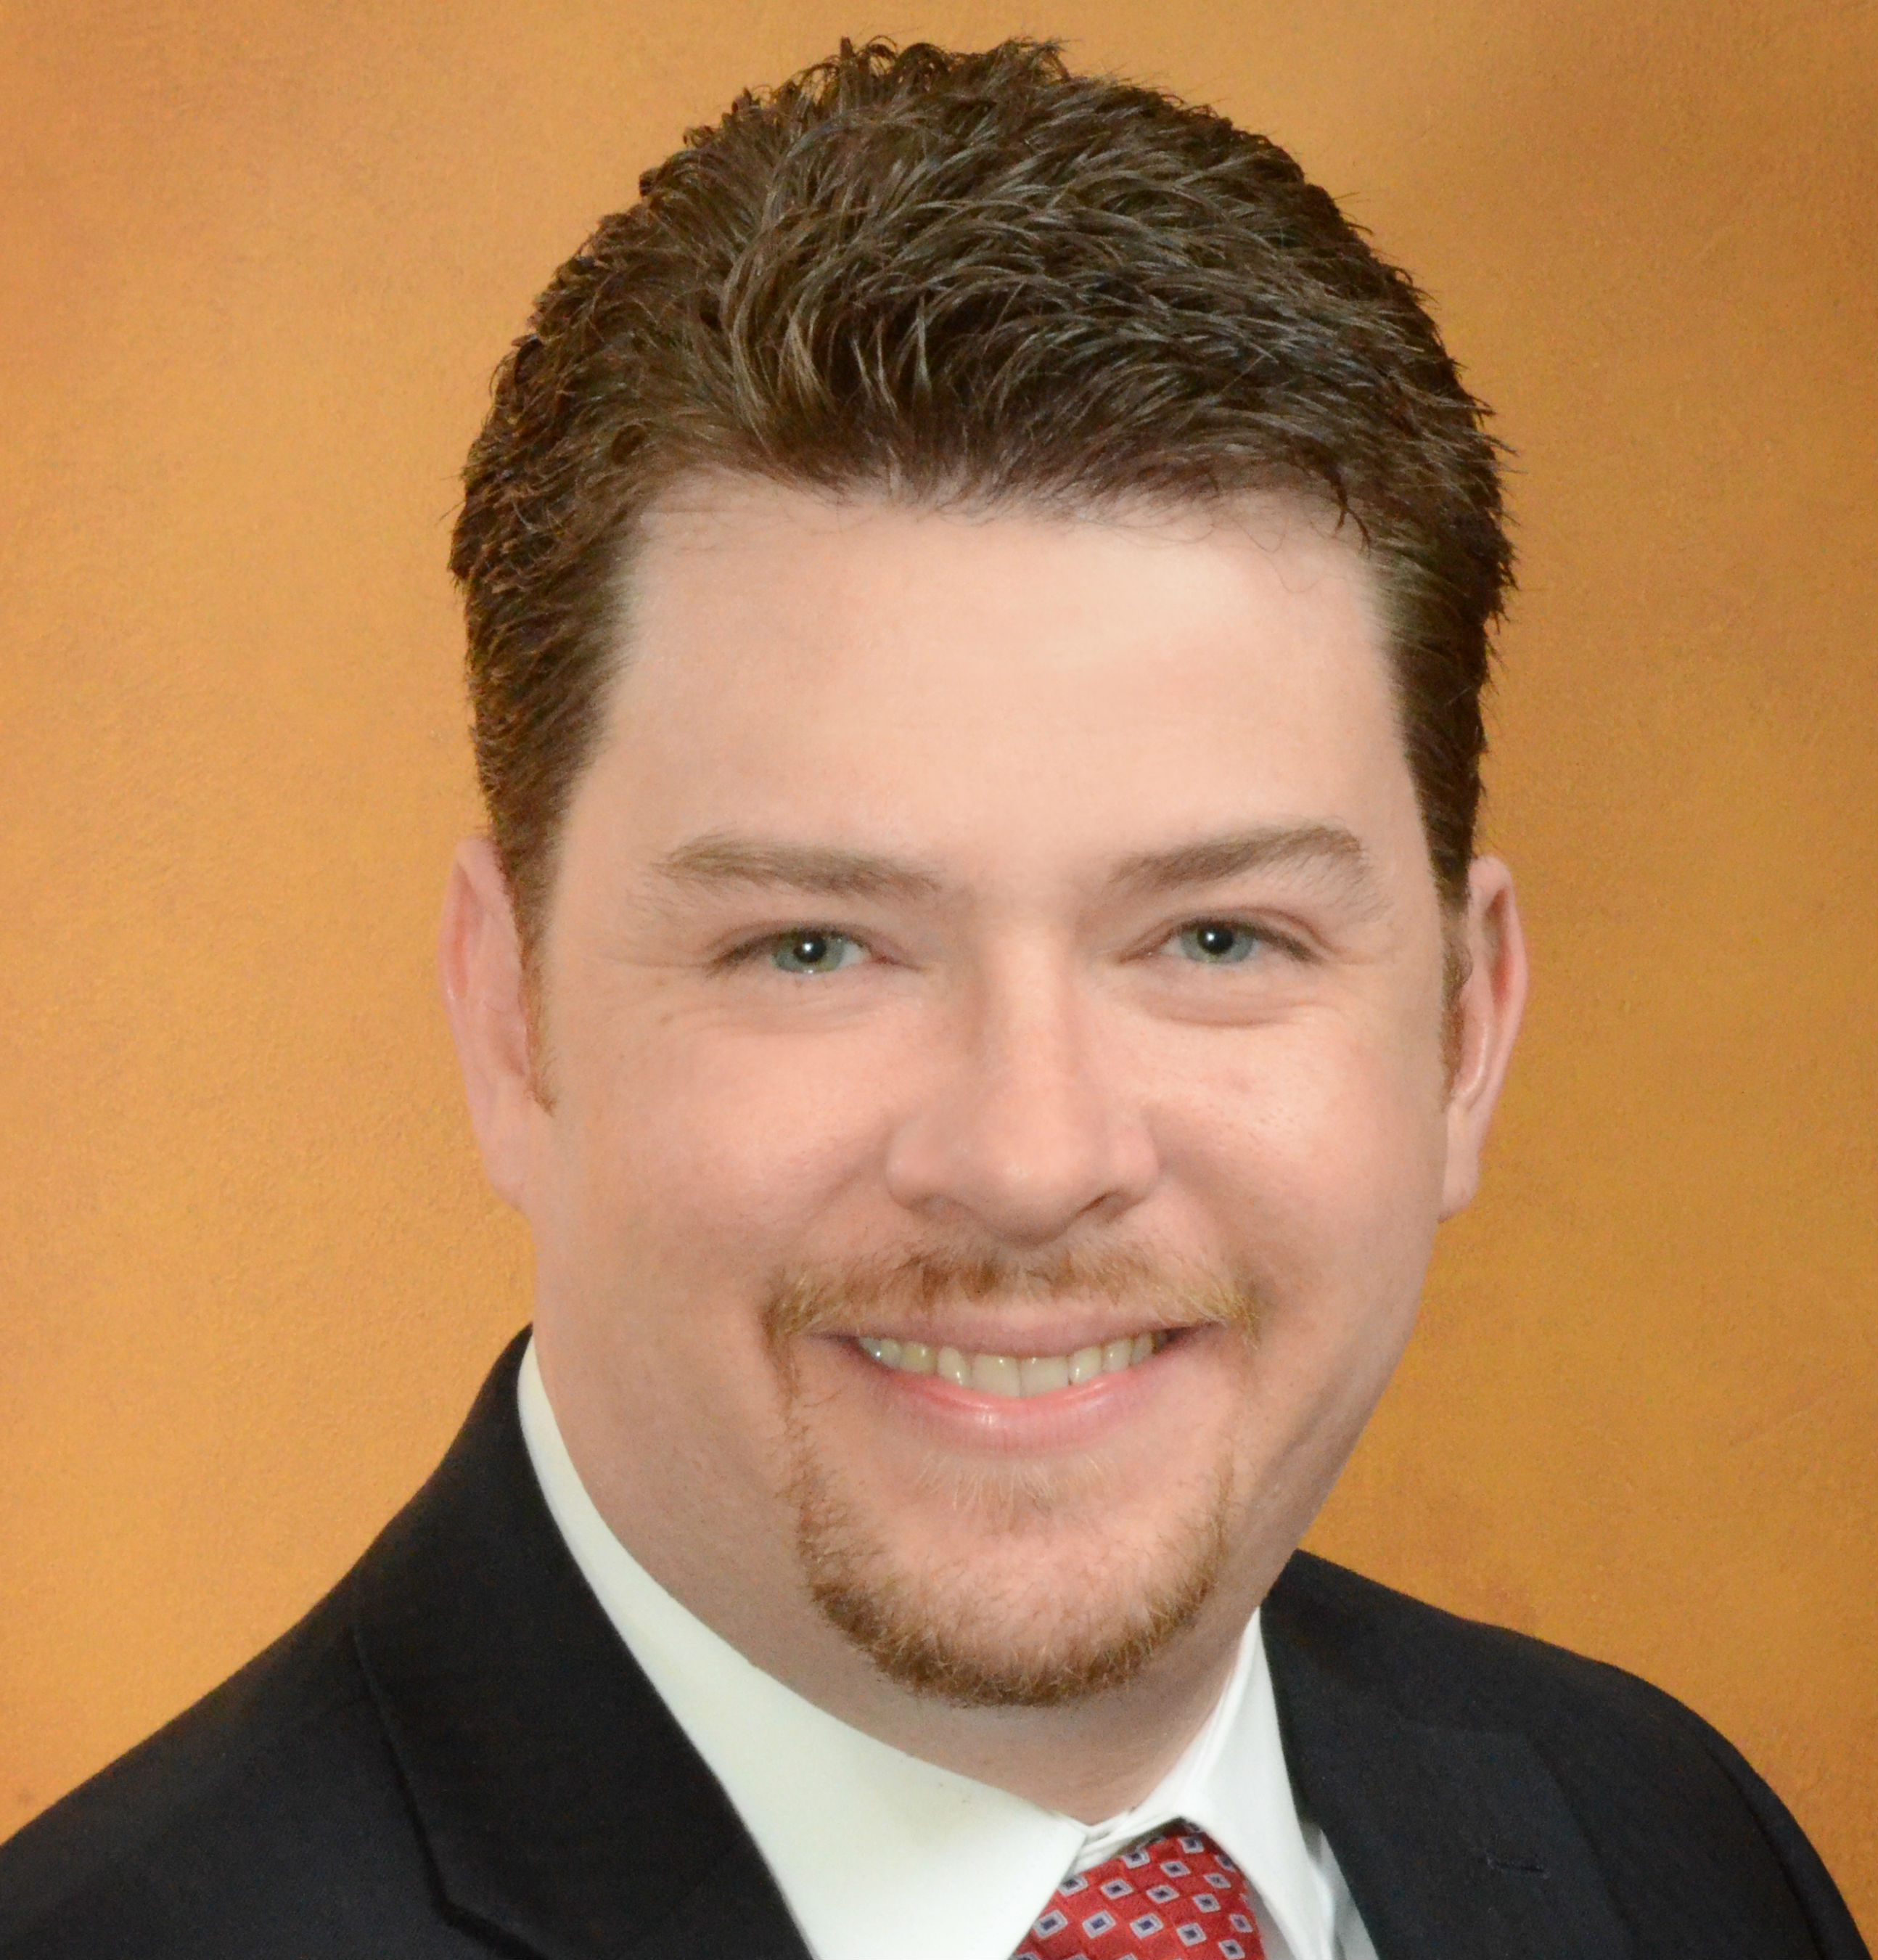 Chris Rondinelli, financial advisor Monroeville PA